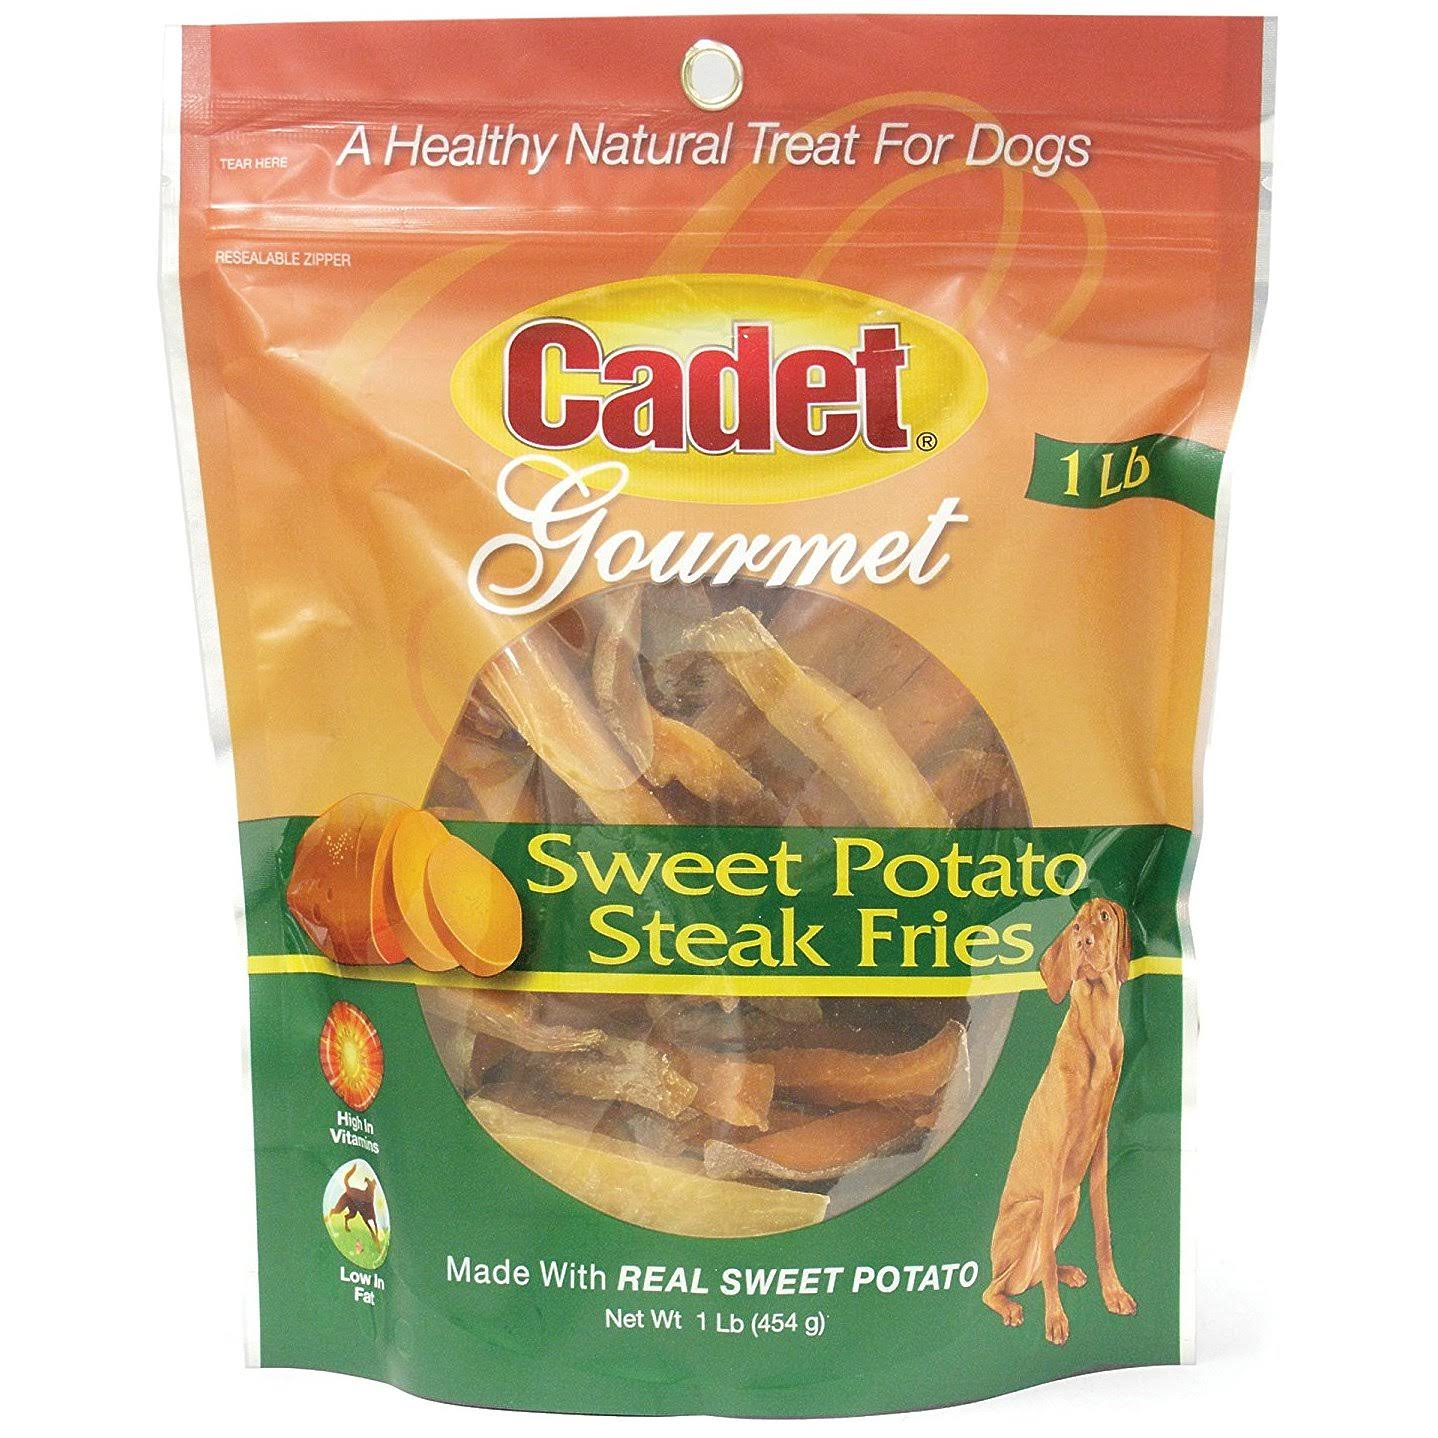 Cadet Gourmet Dog Treats - Sweet Potato Steak Fries, 454g